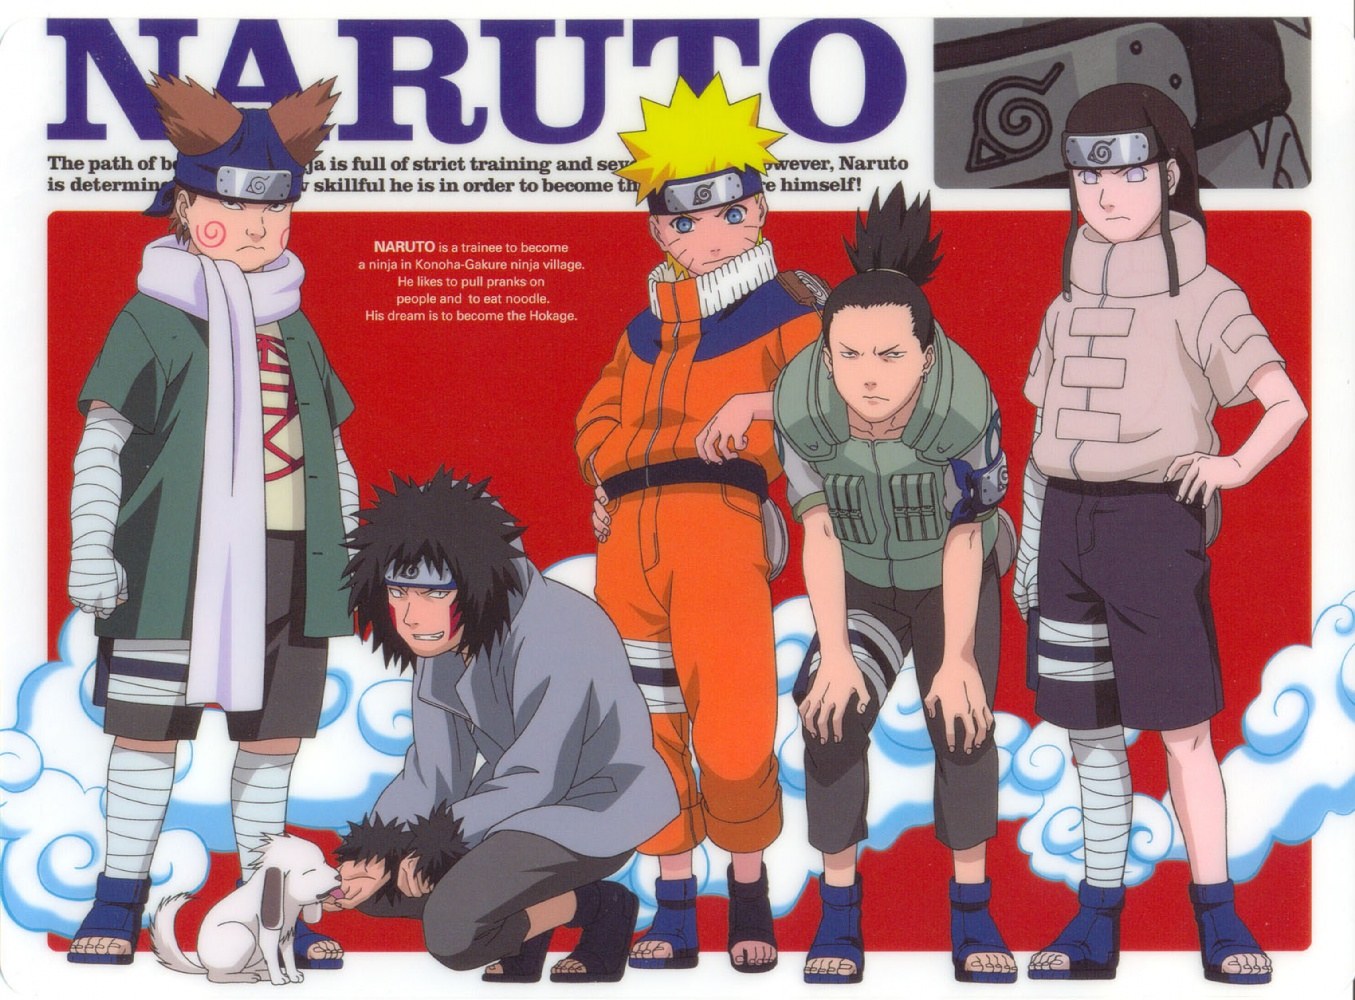 Choji, Kiba, Naruto, Shikamaru, Neji - The Sasuke Retrieval Team Poses